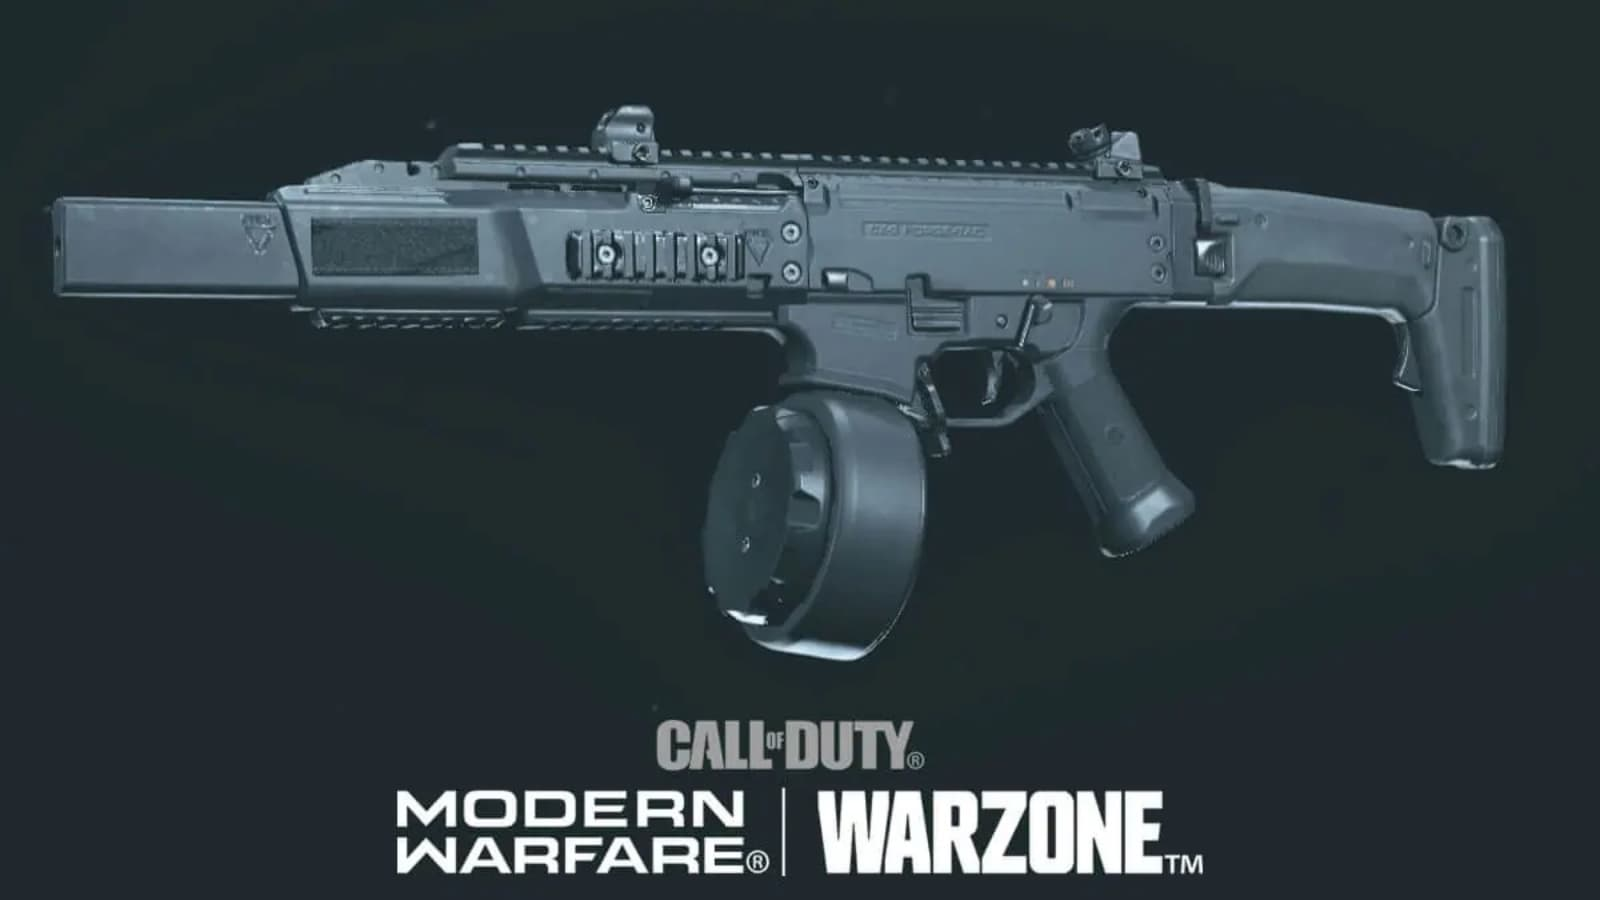 The Best CX-9 Warzone Loadout with Details